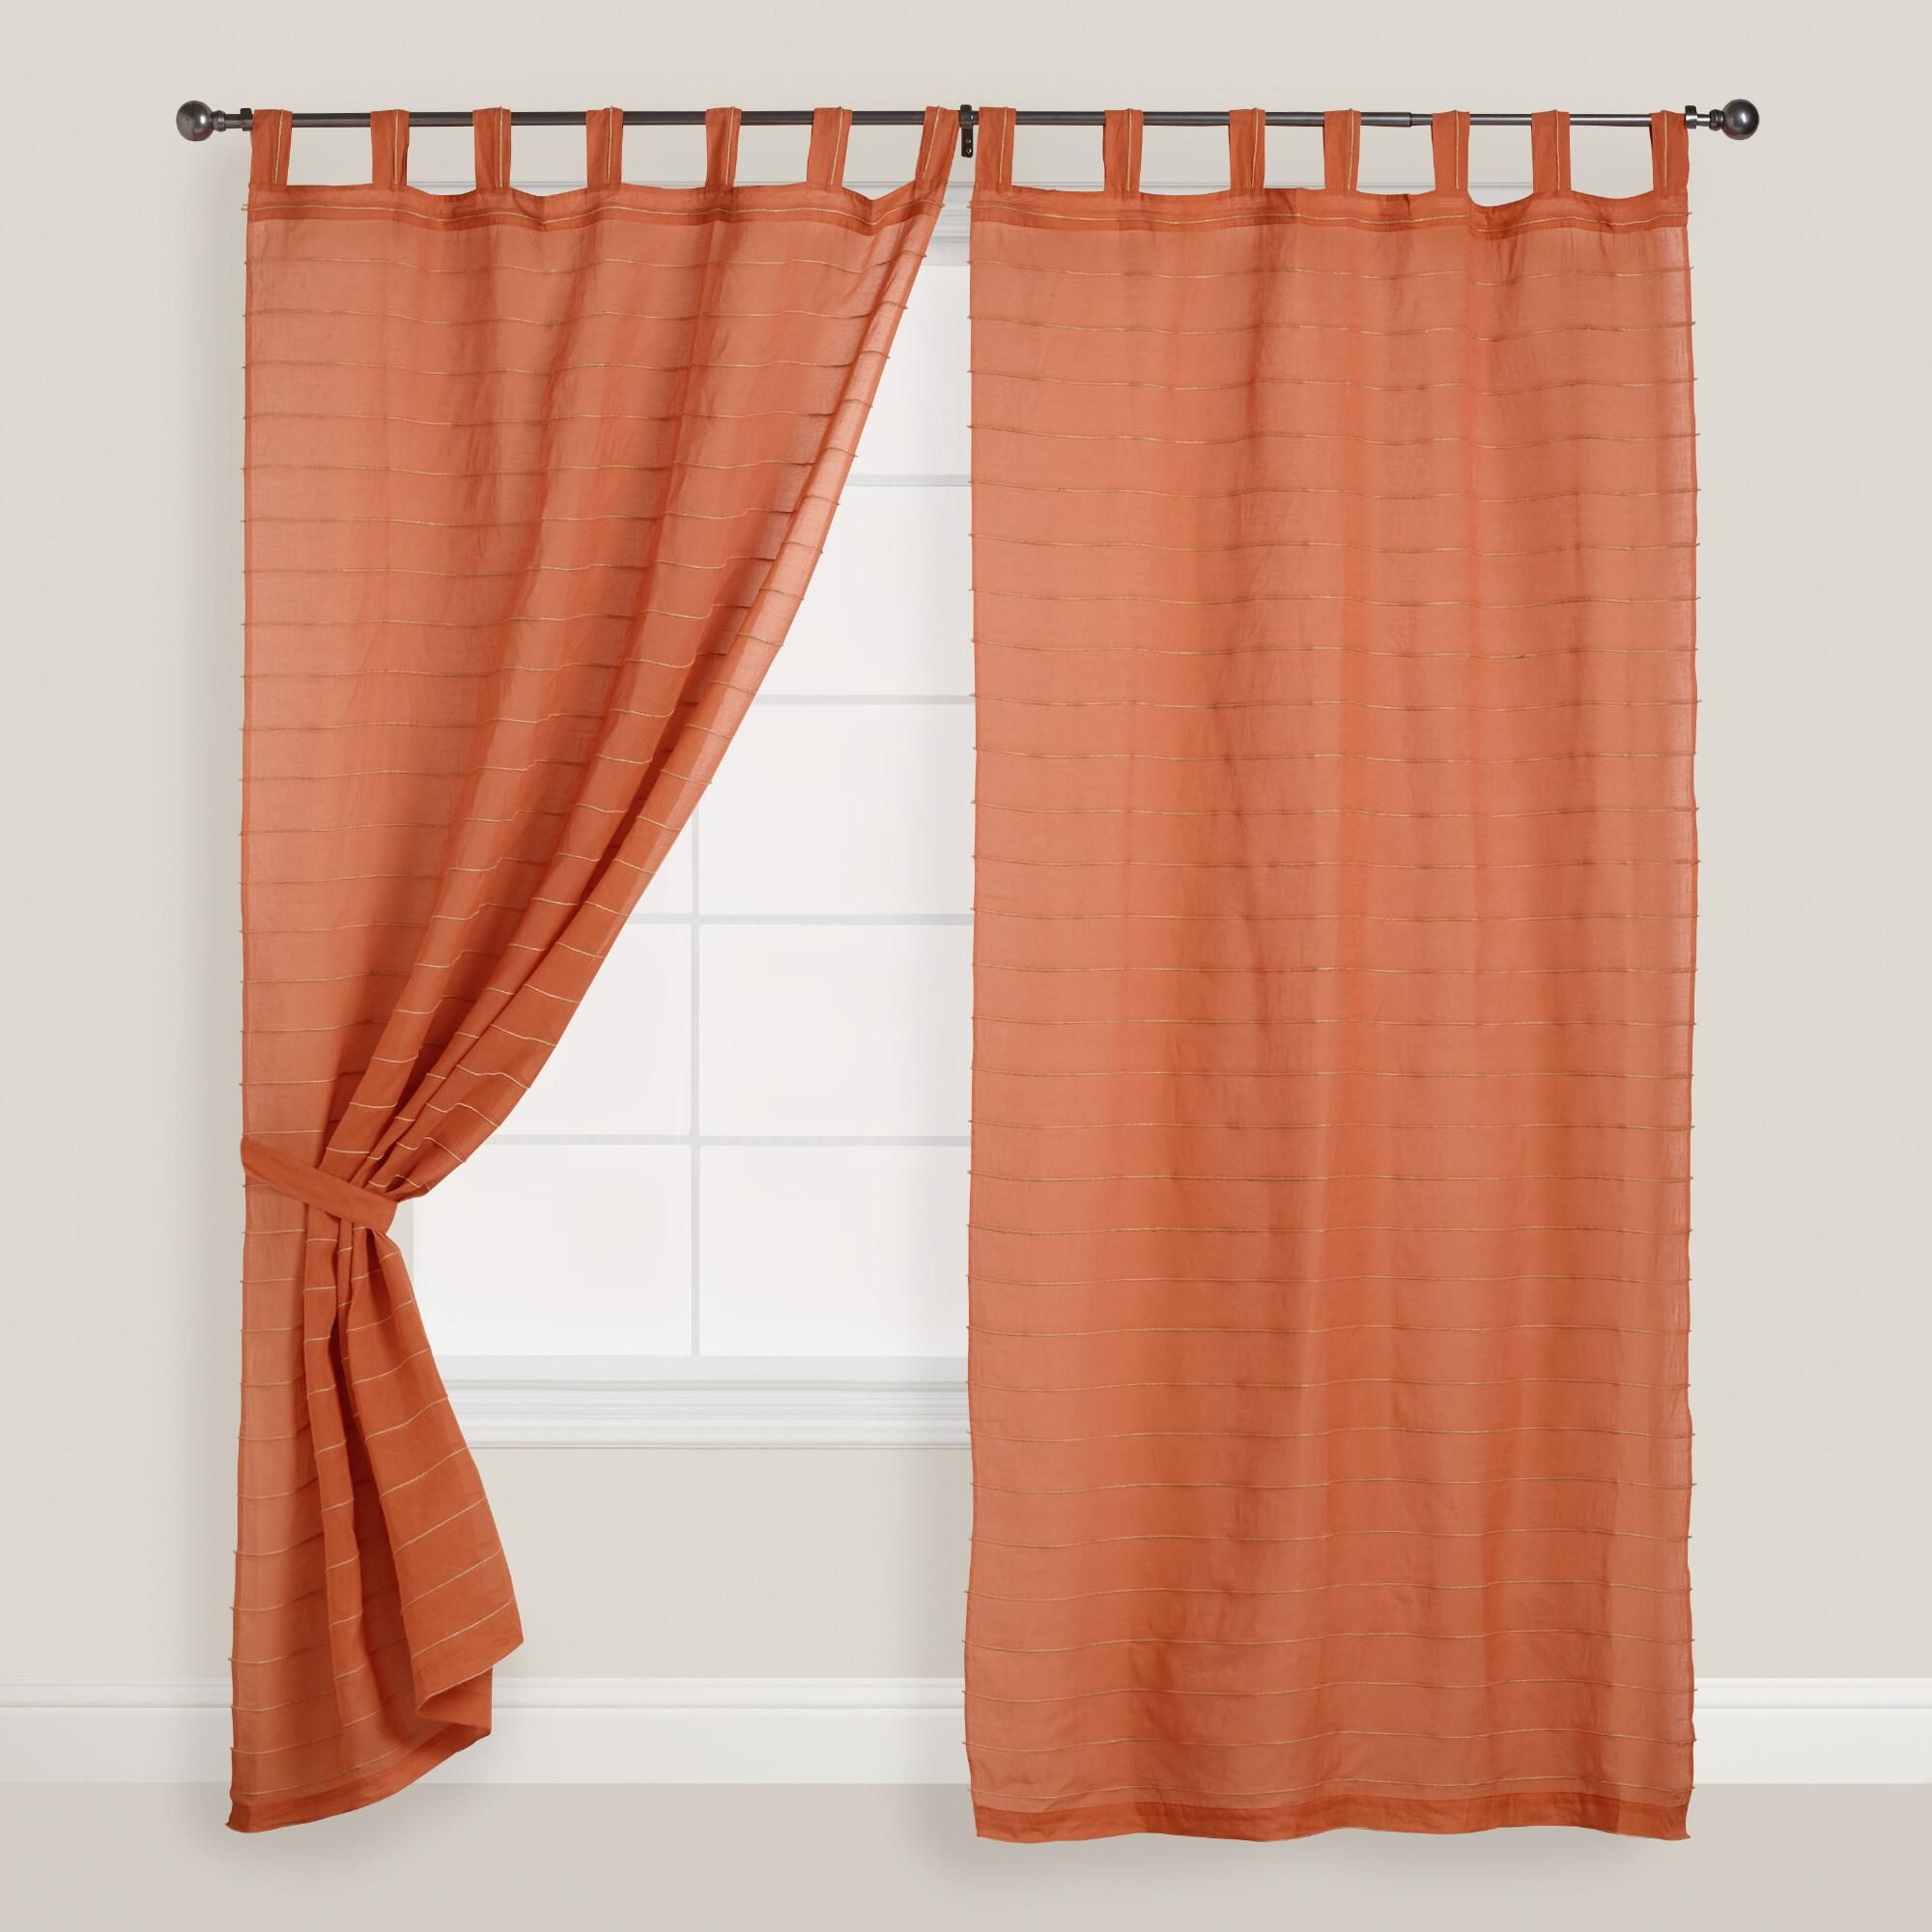 curtains halloween with curtain burnt and cascade full orange shower ruffled size voile of in trendy grey ideas gray uncategorized